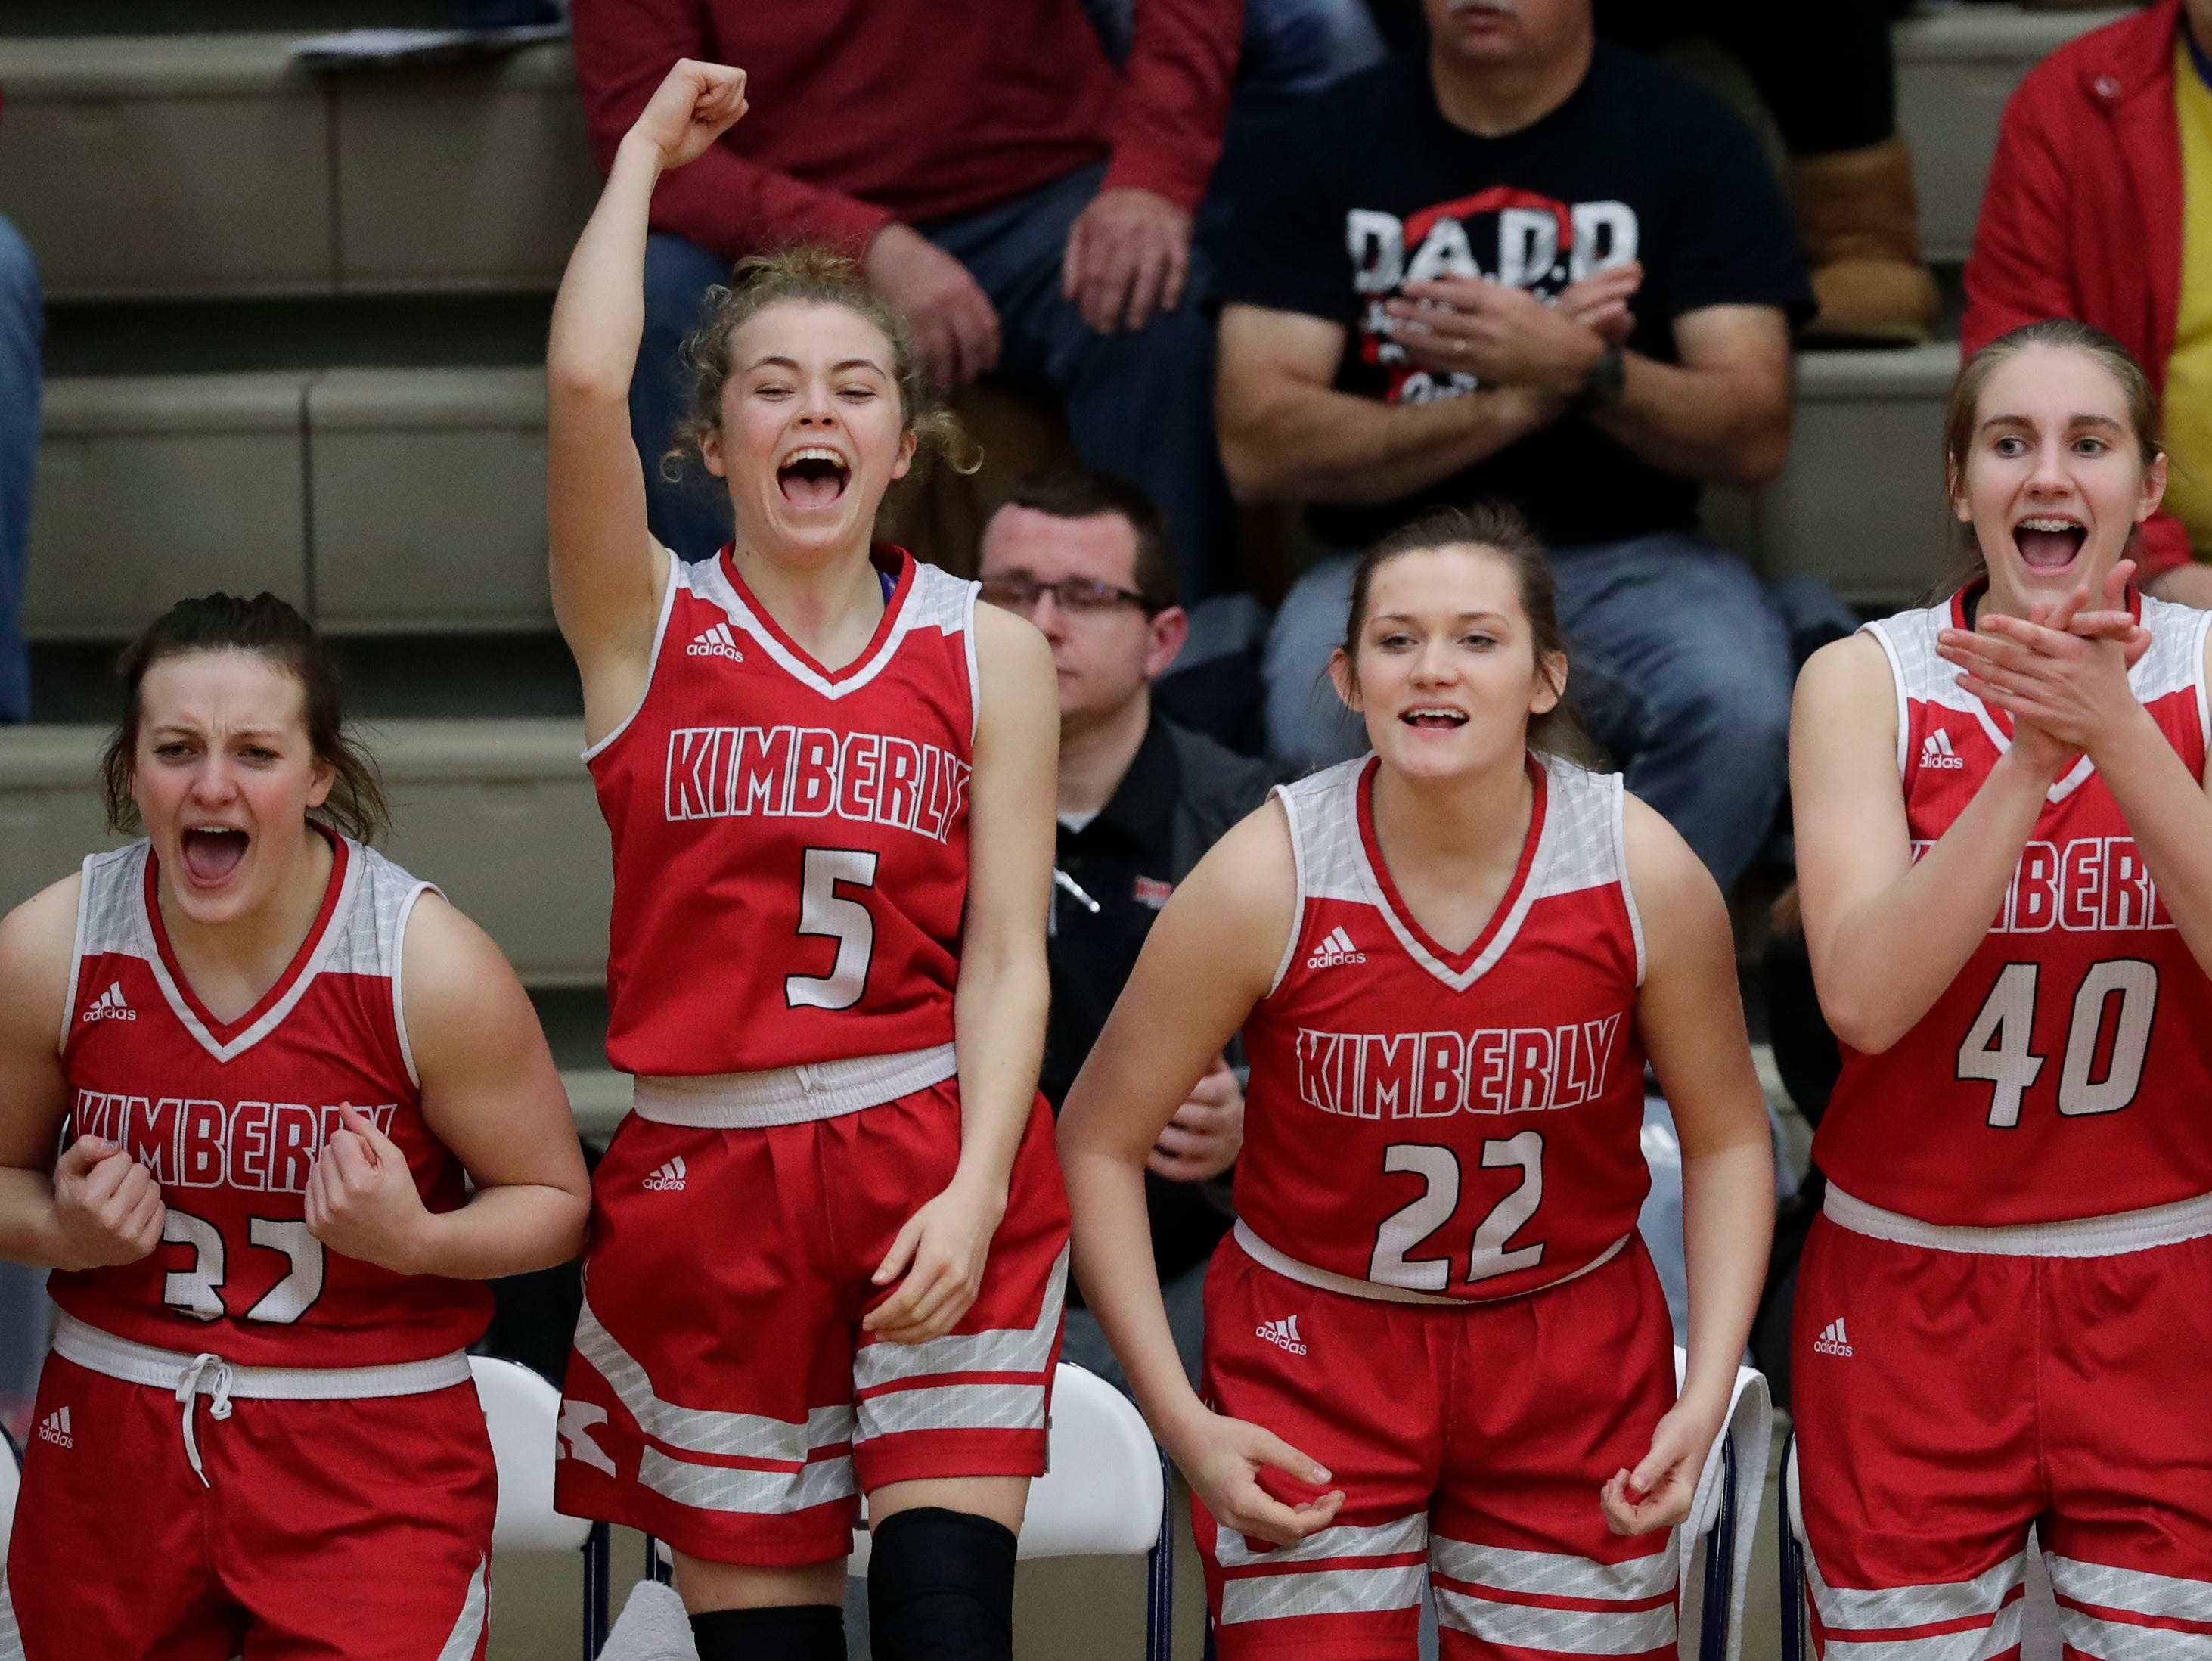 Kimberly High School's Emma Kilatrick (32), Paige Cullen (5), Kennedy Litvinoff (22) and Kayla Behnke (40) cheer for their teammates after a basket scored against Appleton North High School during their girls basketball game Tuesday, January 8, 2019, in Appleton, Wis. 